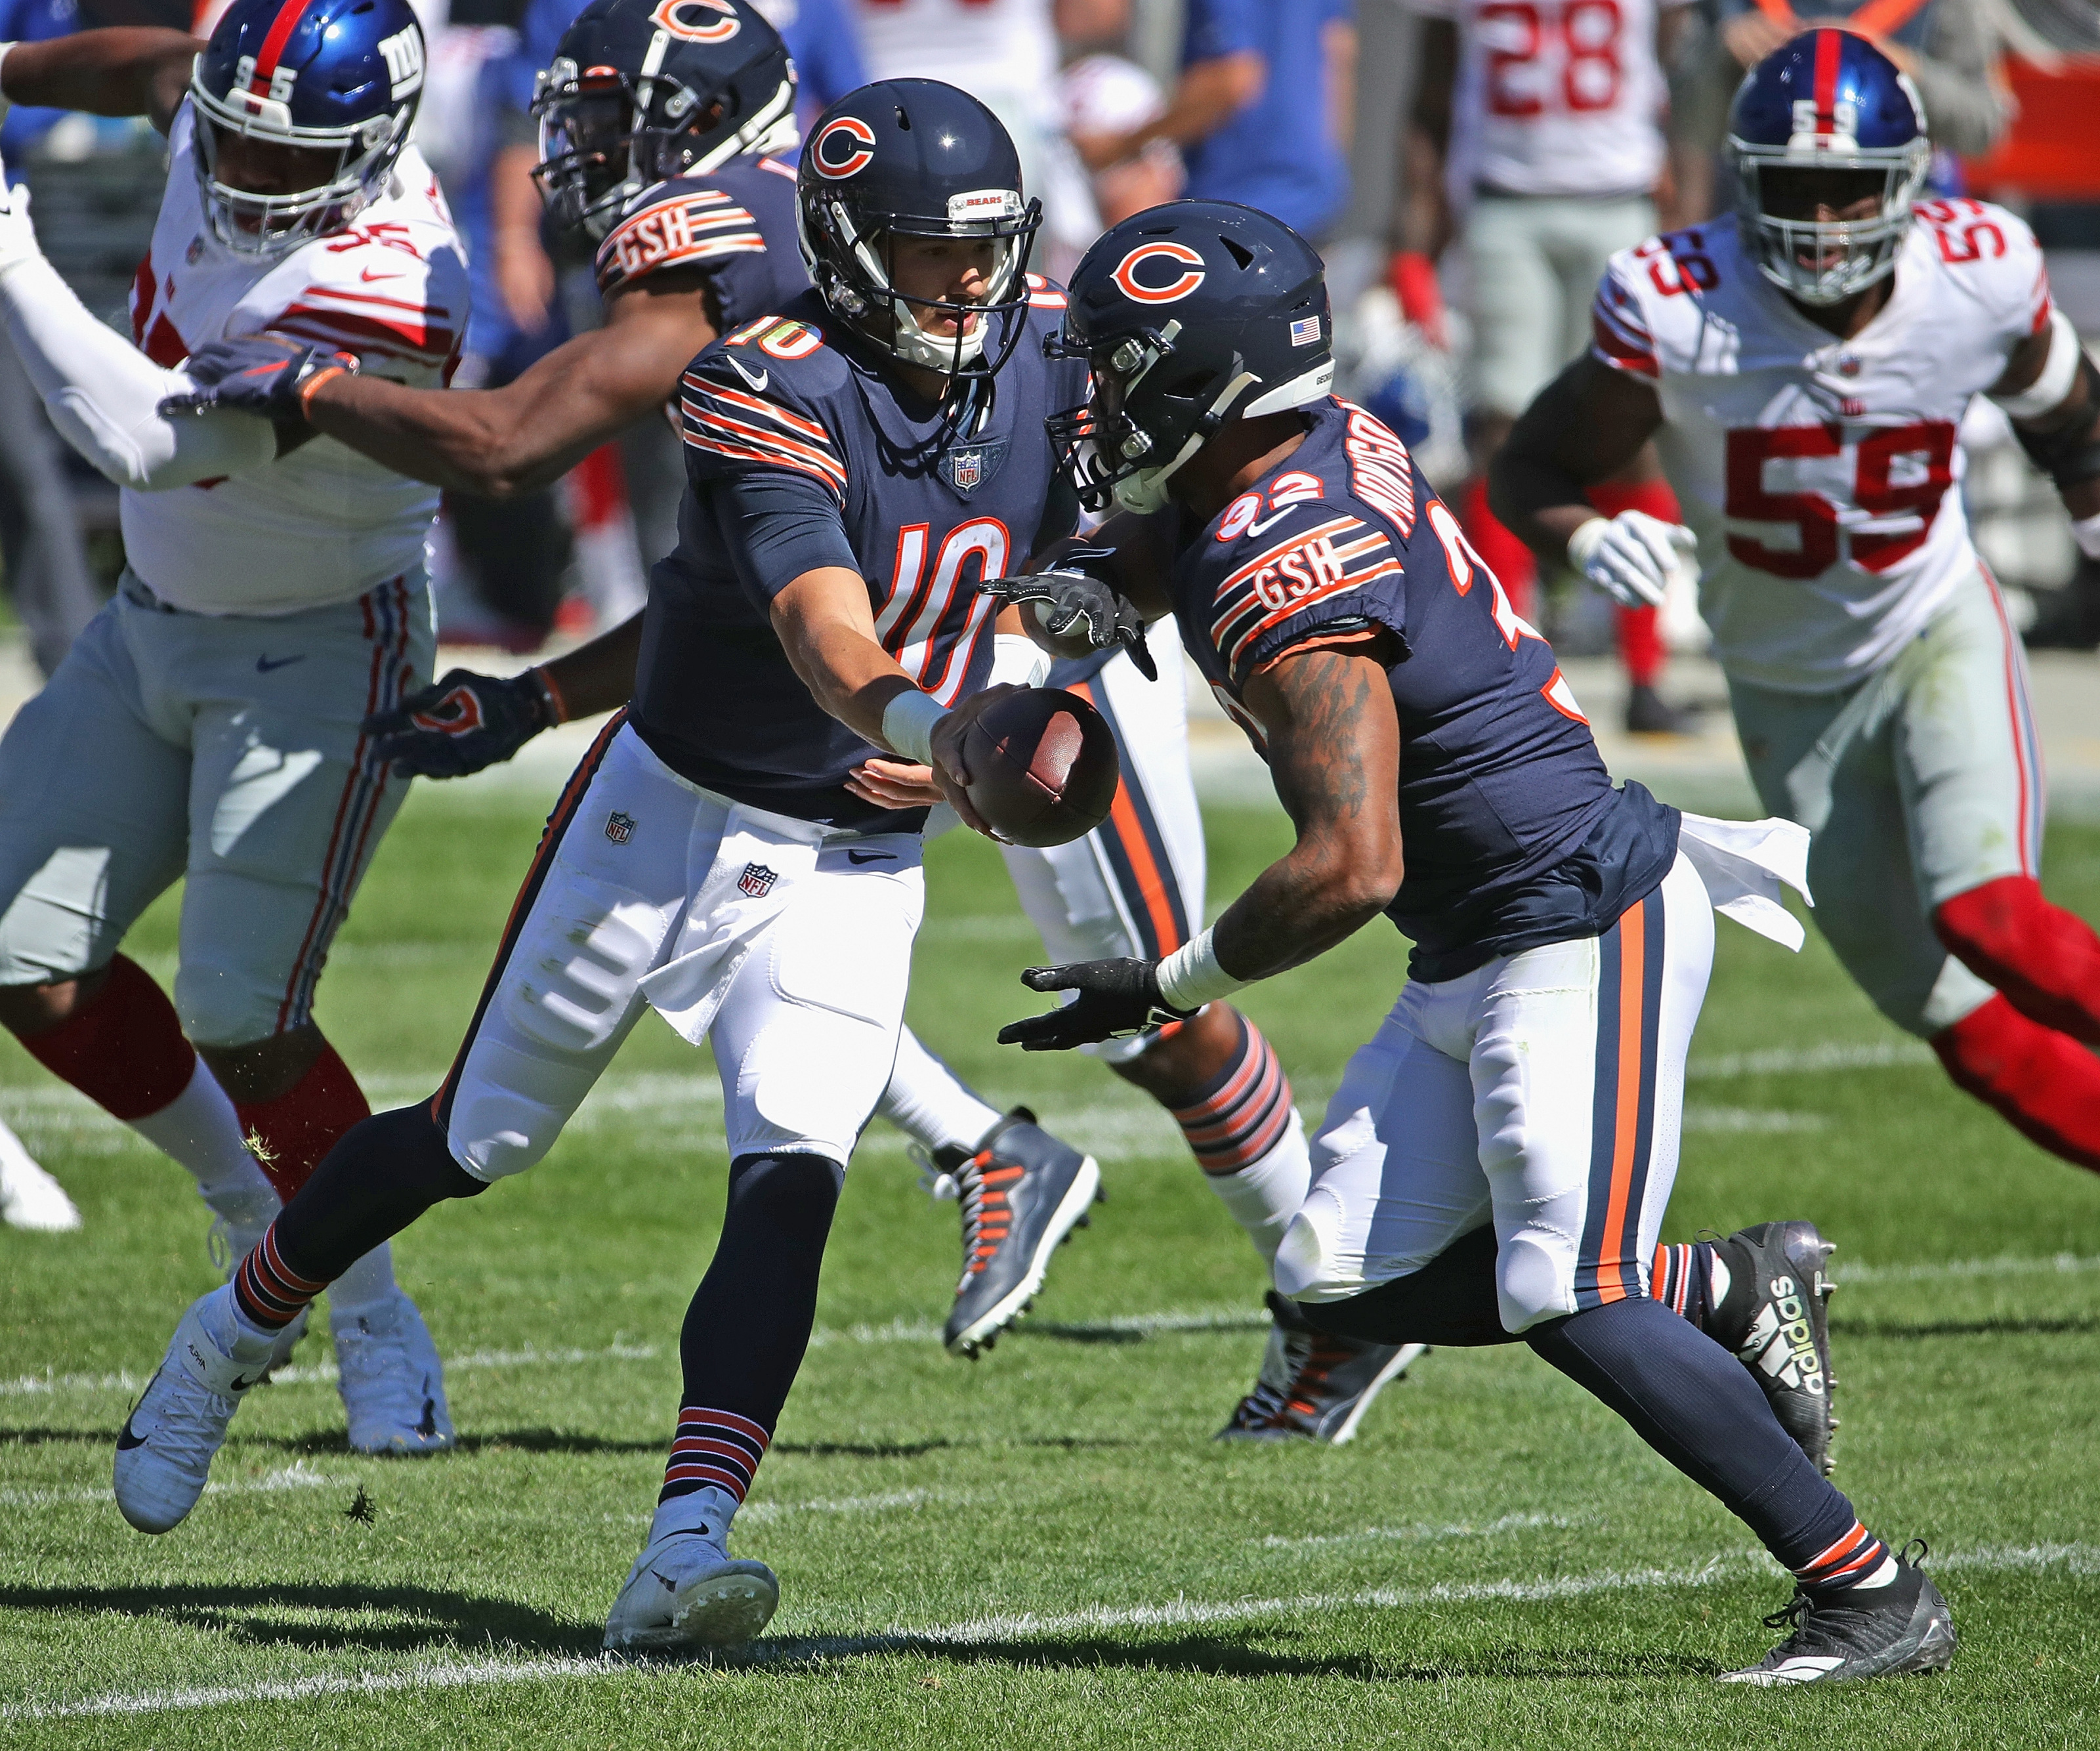 Bears Vs Falcons Big Test For Both Offense And Defense